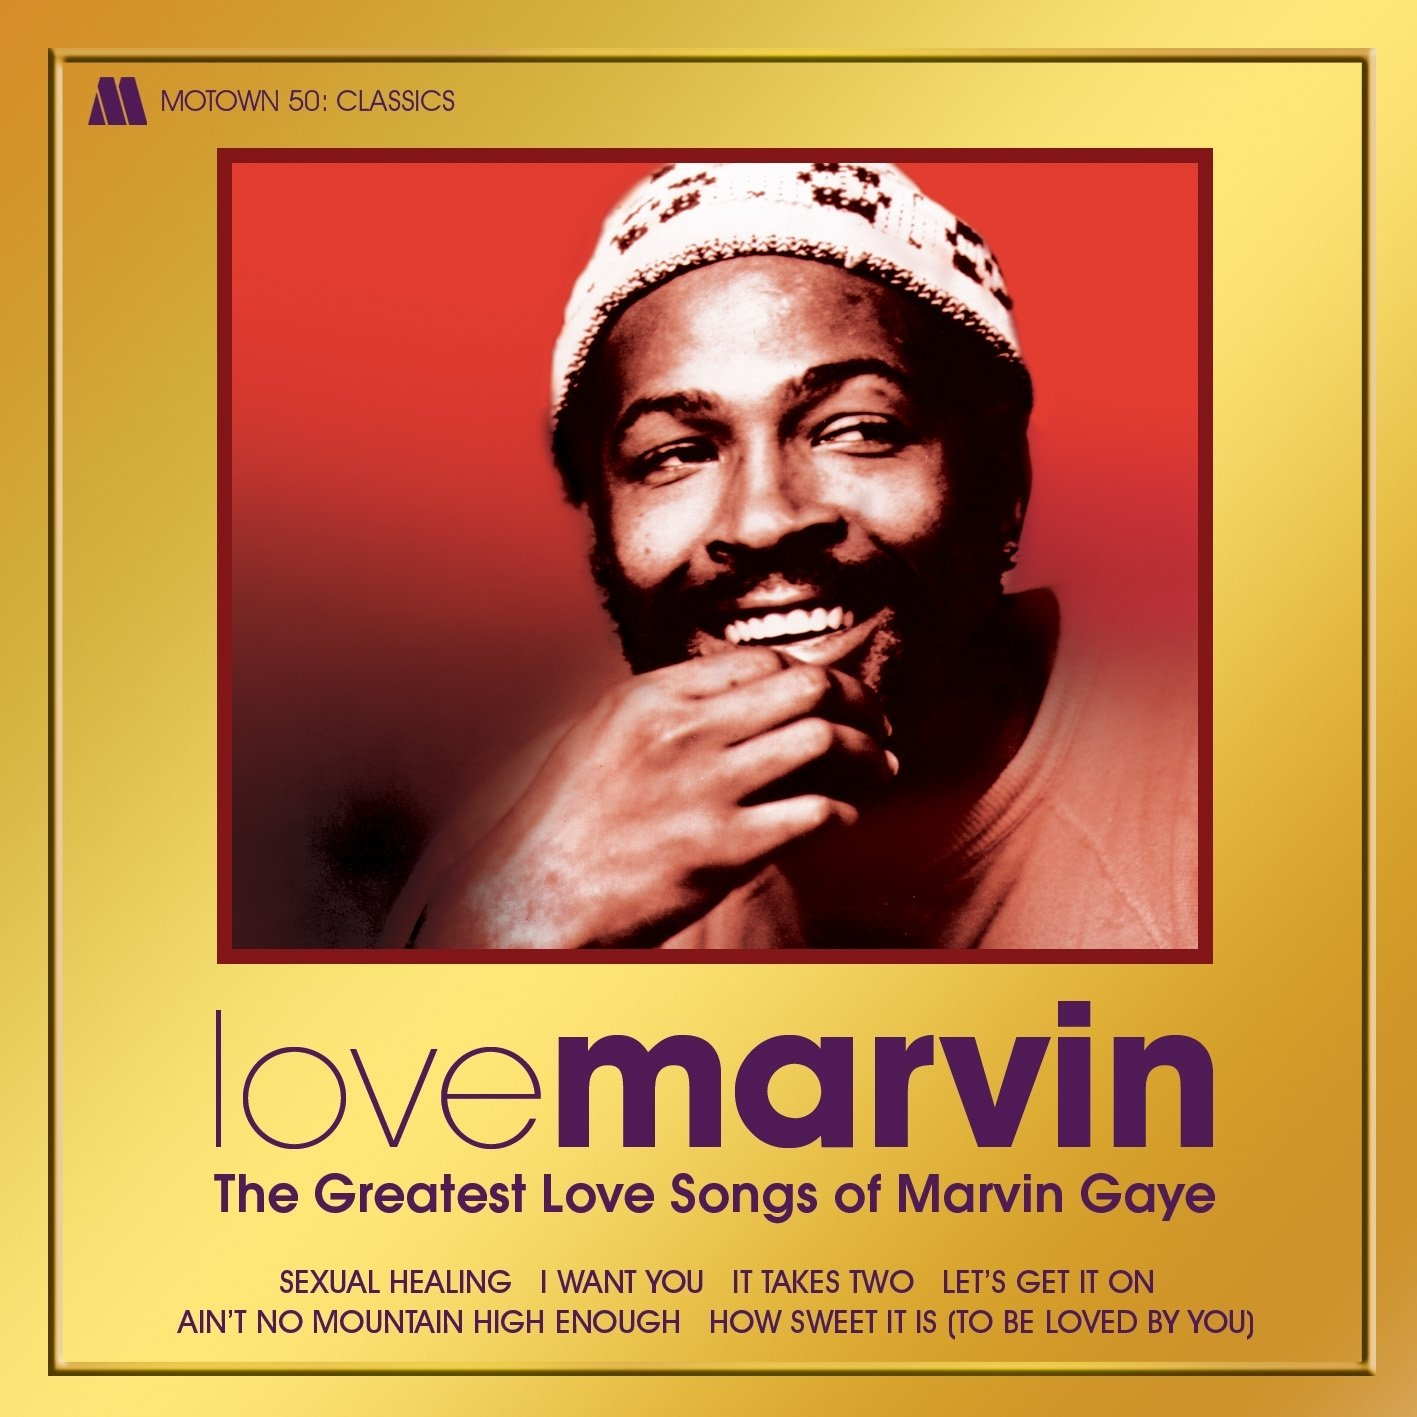 Marvin Gaye - Love Marvin: Greatest Love Songs - Amazon com Music